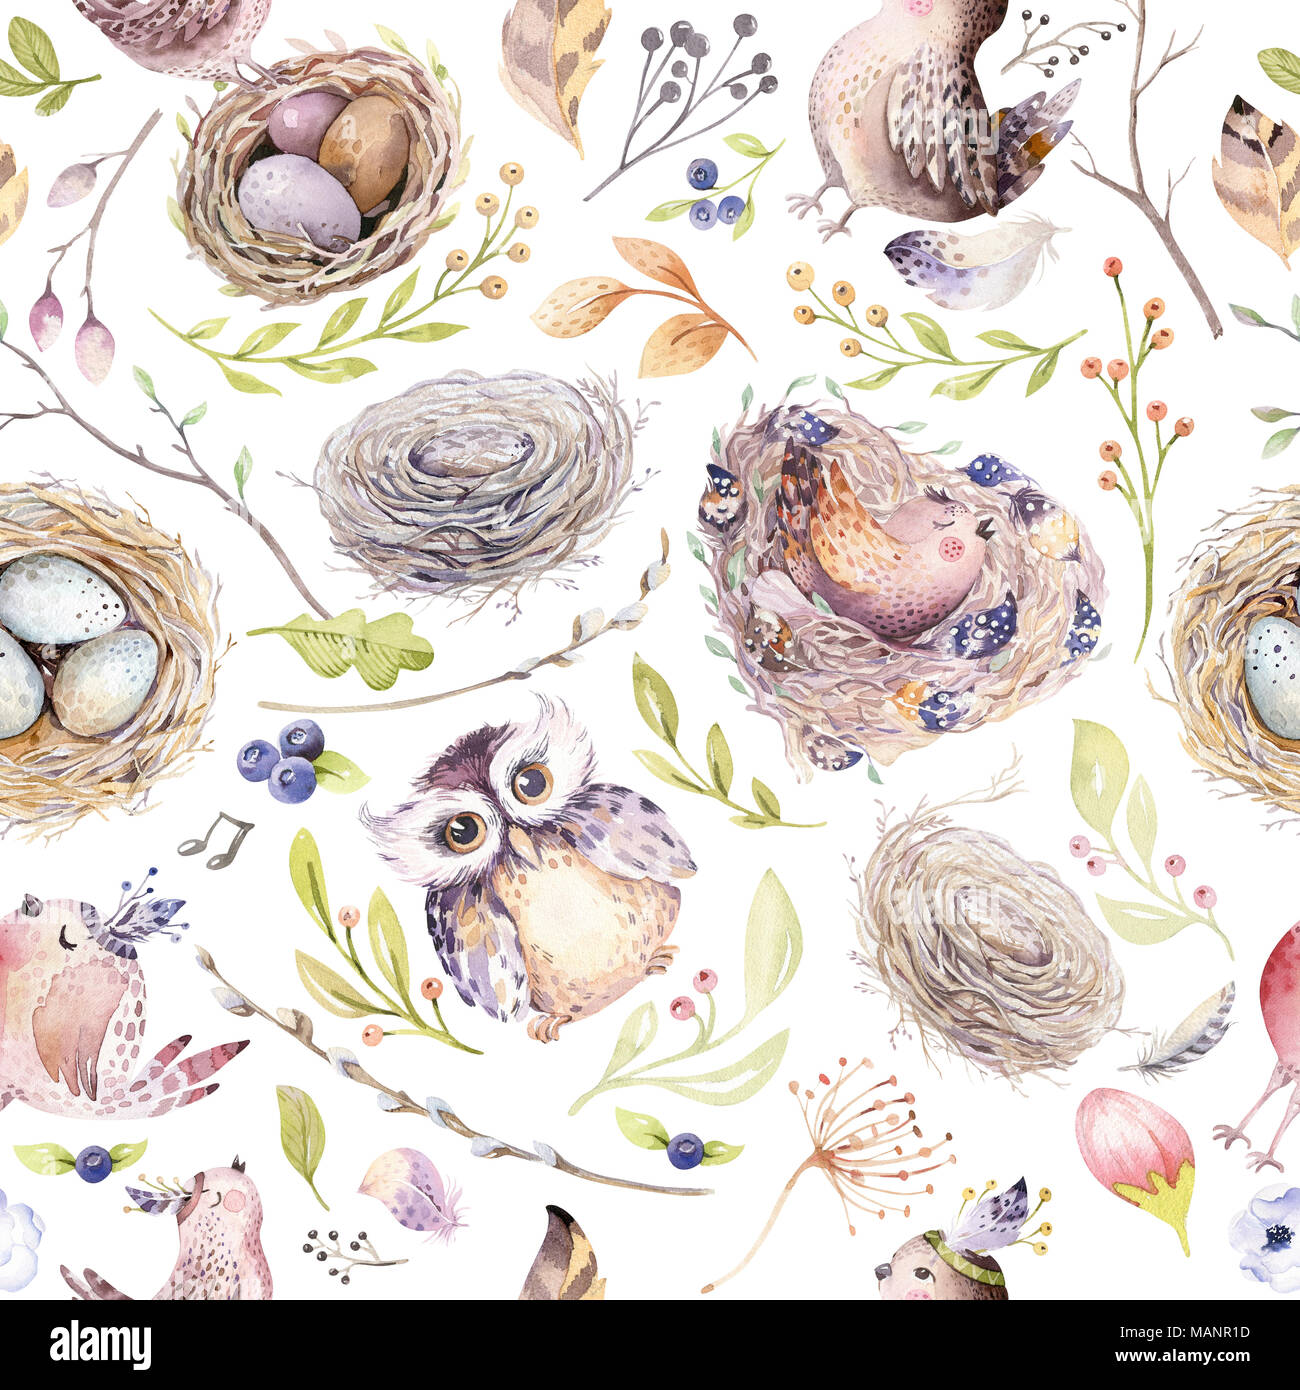 Watercolor Spring Rustic Pattern With Nest Birds Branchtree Twigs And Feather Watercolour Seamless Hand Drawn Bird Background Vintage